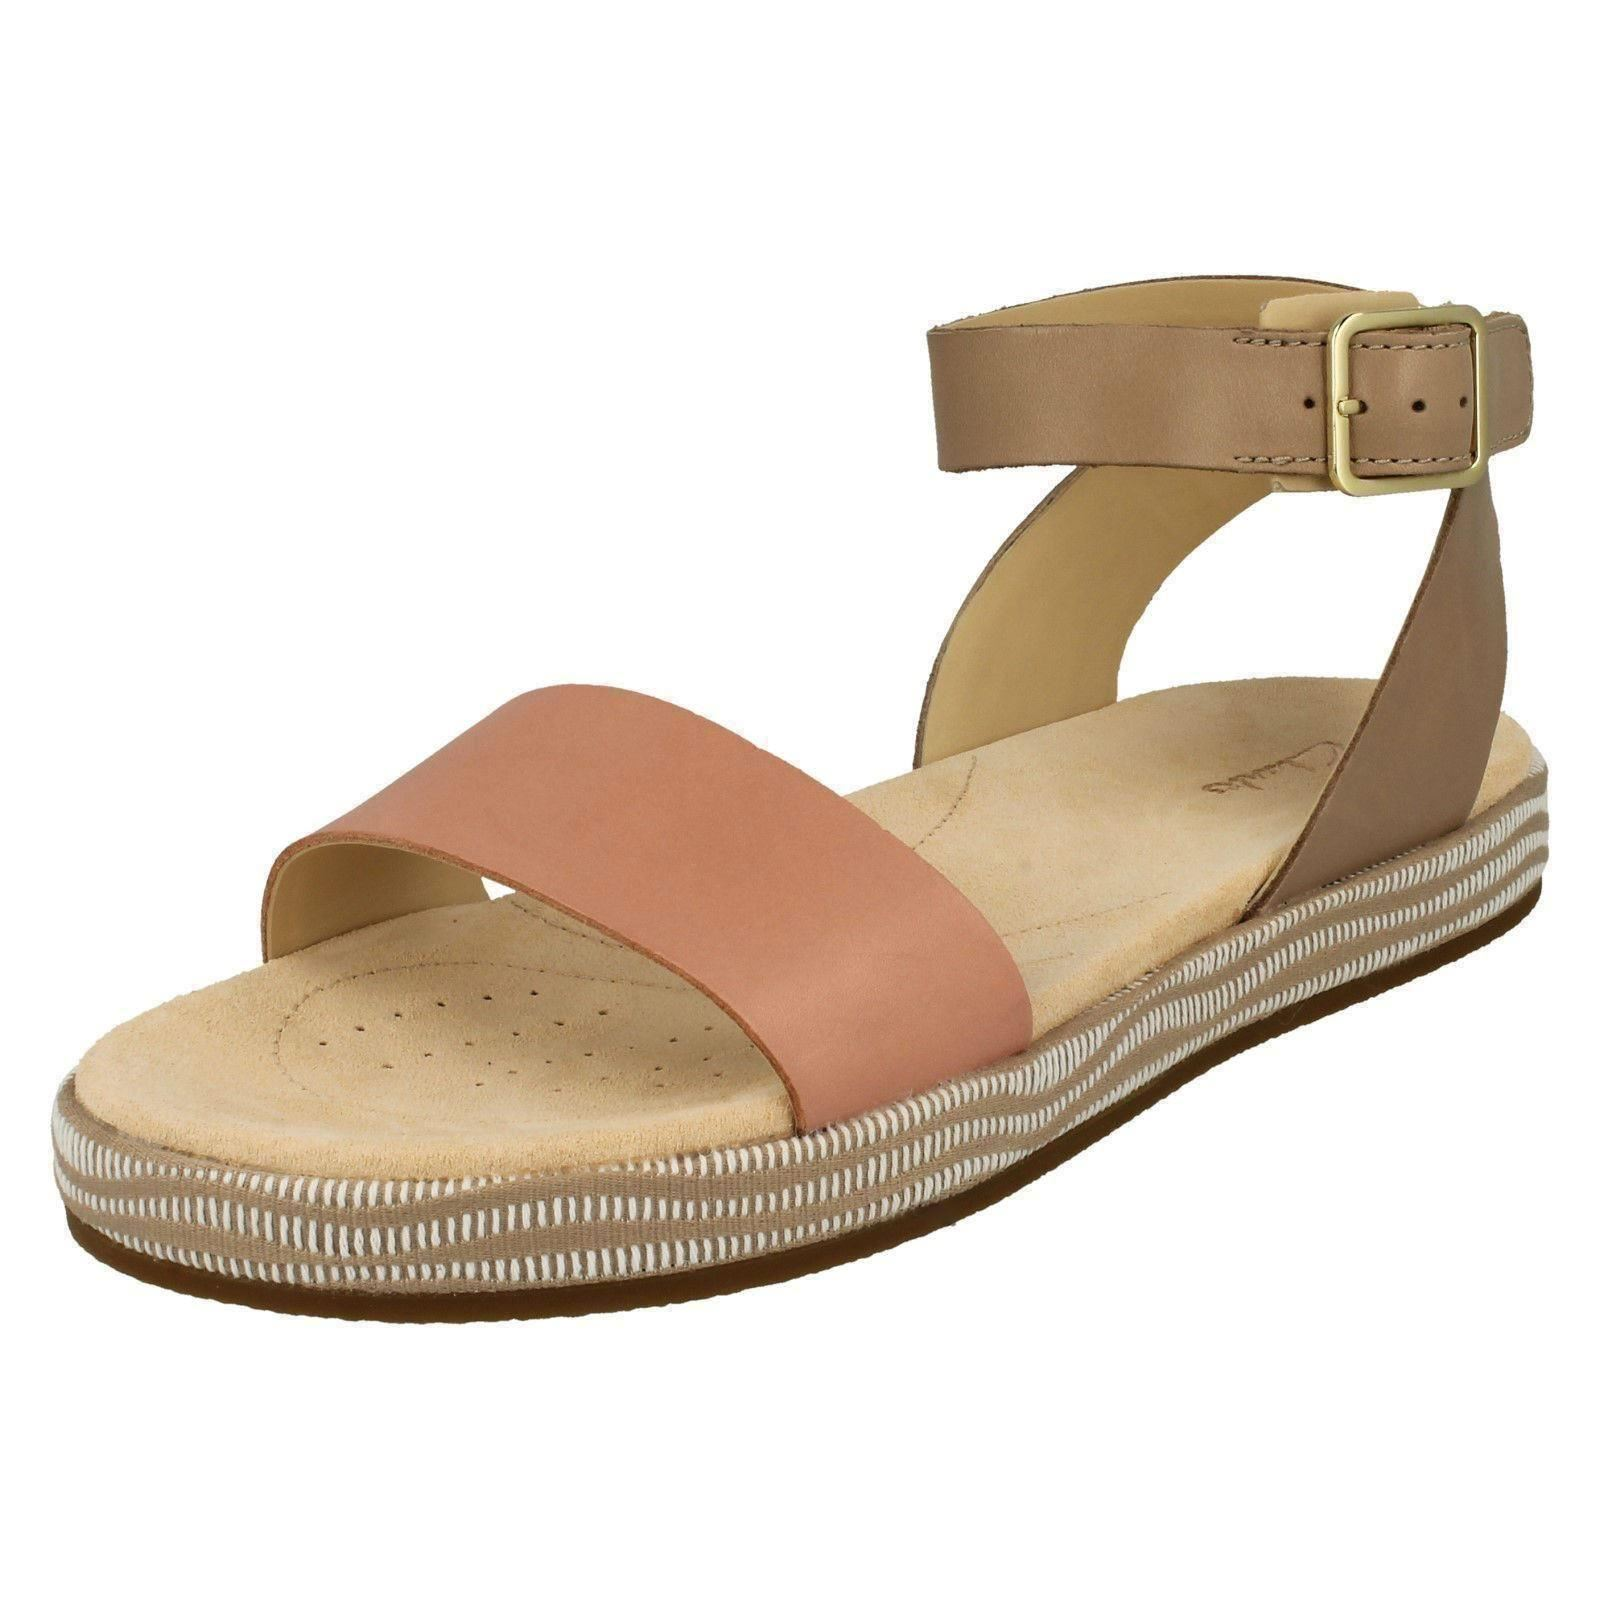 820962e09 Clarks Botanic Ivy - Sand Combi (beige) Womens Sandals 6 UK. About this  product. Picture 1 of 10  Picture 2 of 10 ...